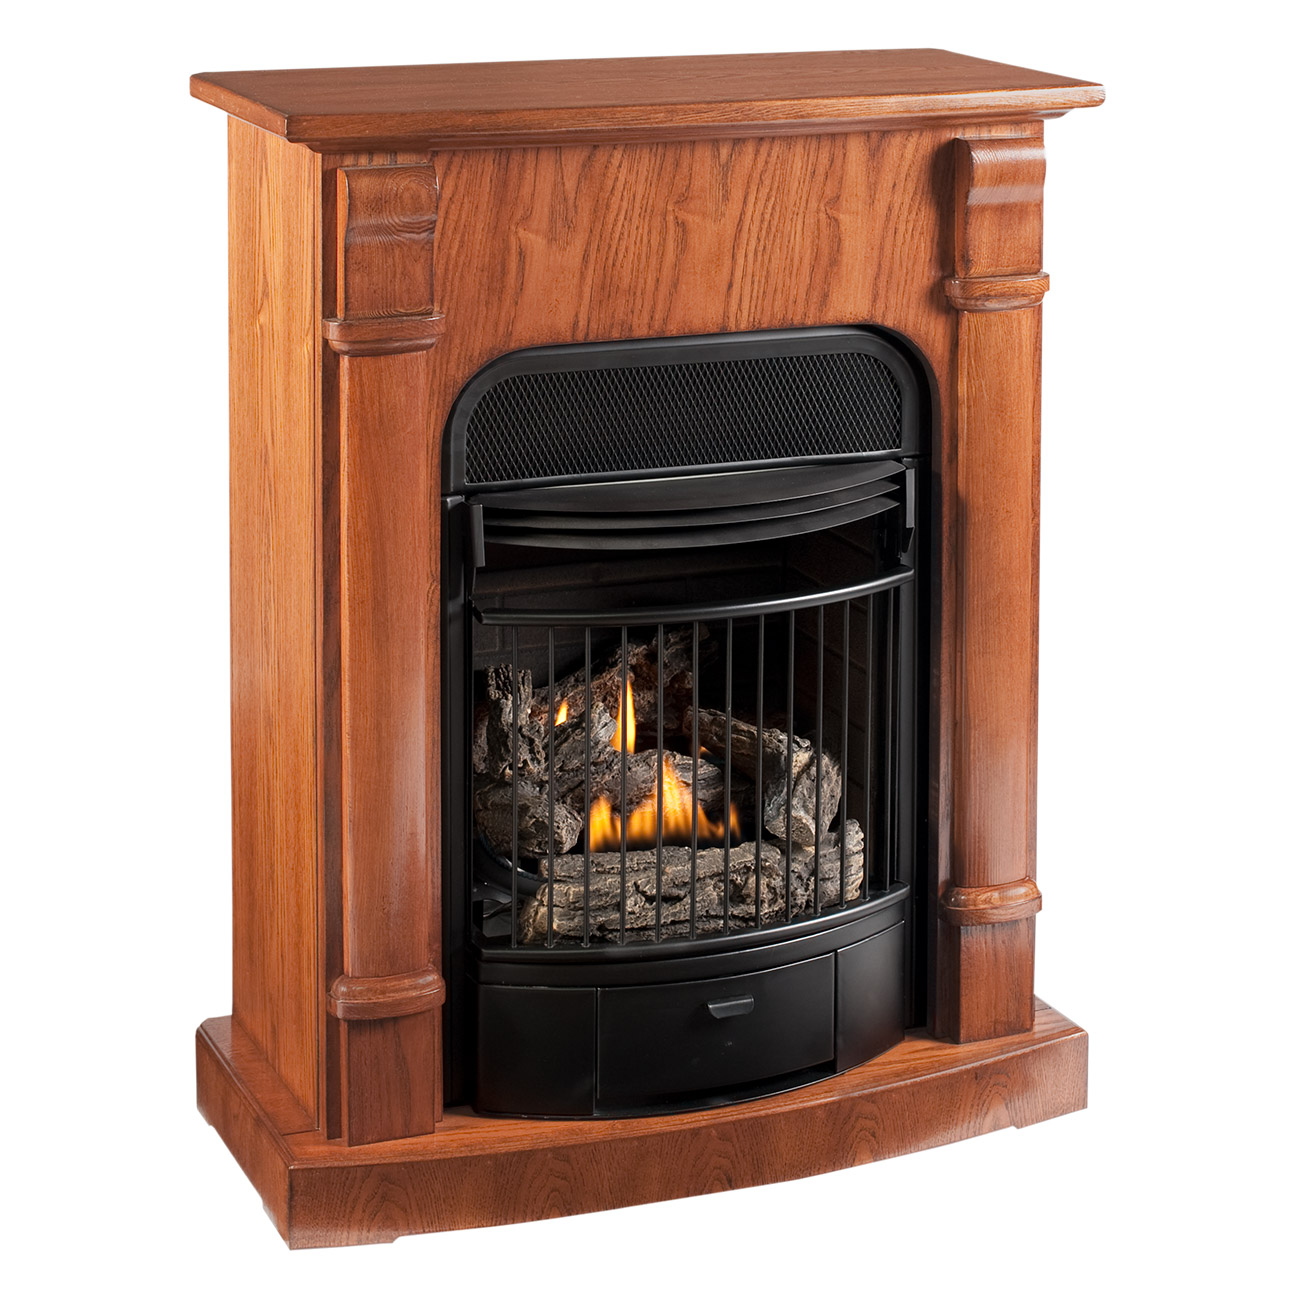 charmglo ventless fireplace insert year of clean water rh yearofcleanwater org charmglow vent free natural gas fireplace charmglow vent free natural gas fireplace